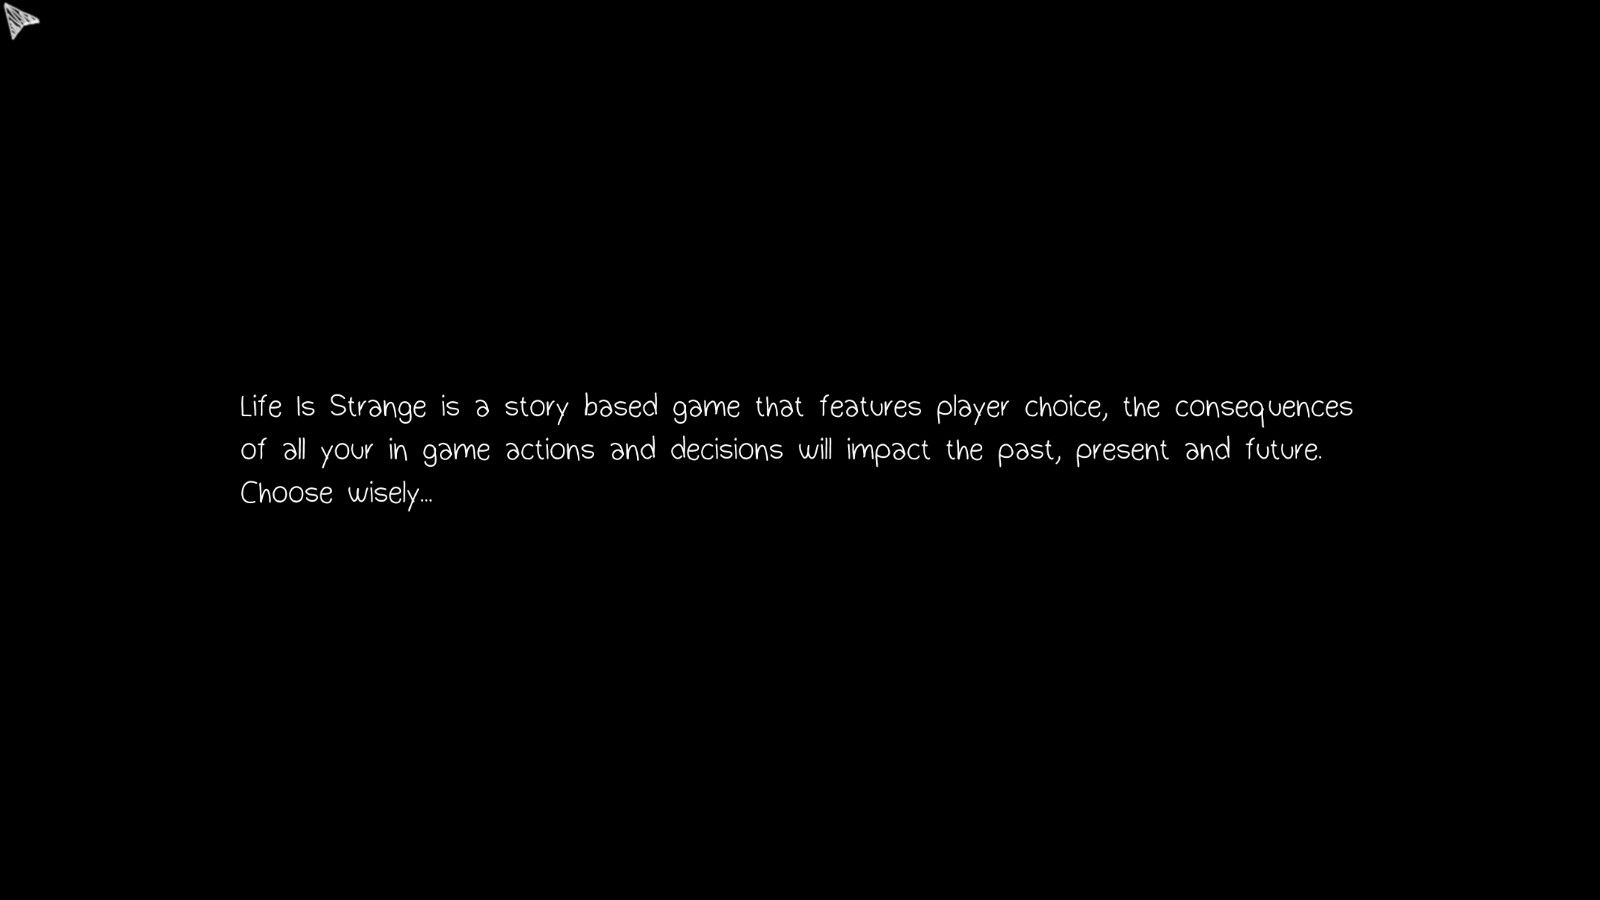 A screencap showing the warning from the beginning of Life is Strange, quoted below.